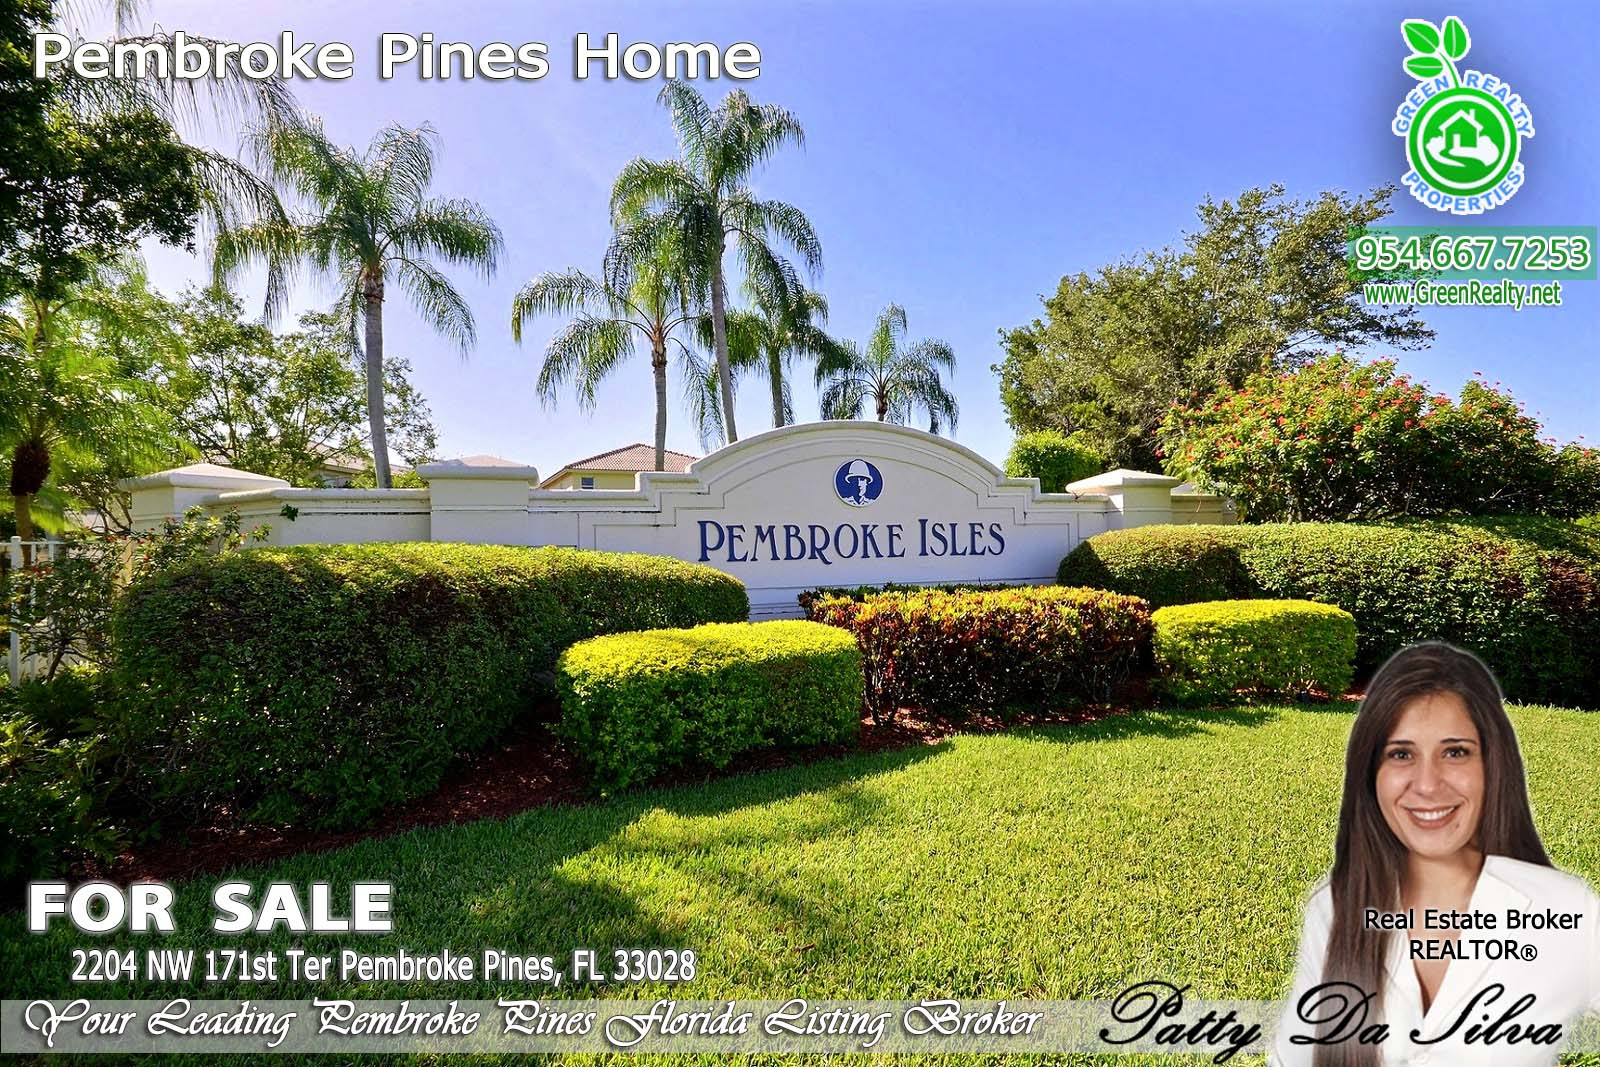 Pembroke Isles Homes For Sale - 2204 NW 171 (2)